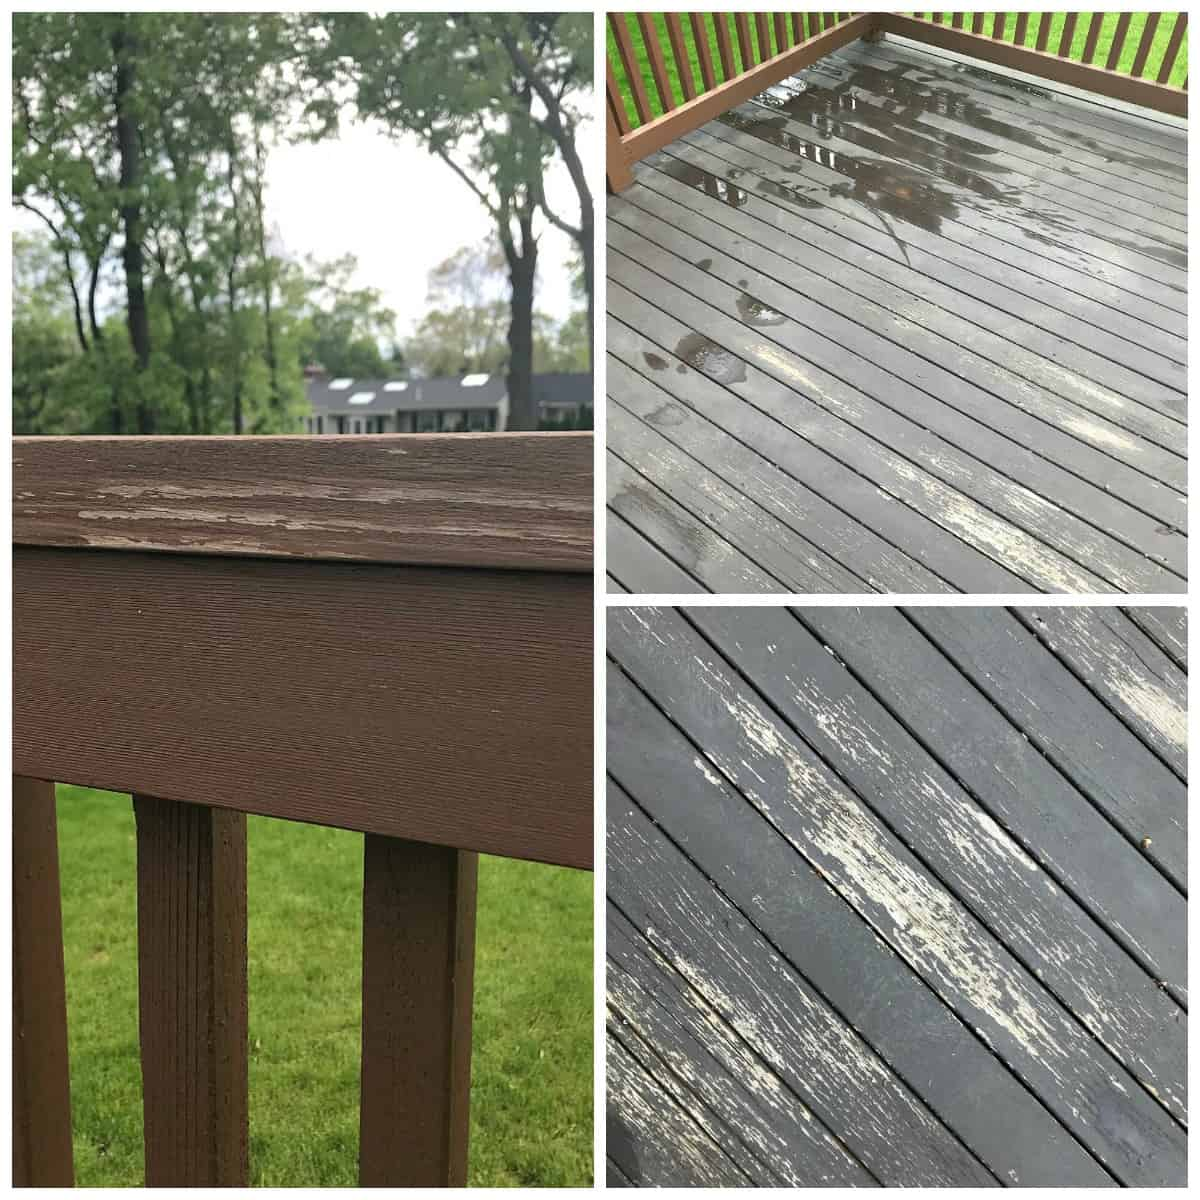 Old deck with chipping and peeling paint, cracks and lots of splinters